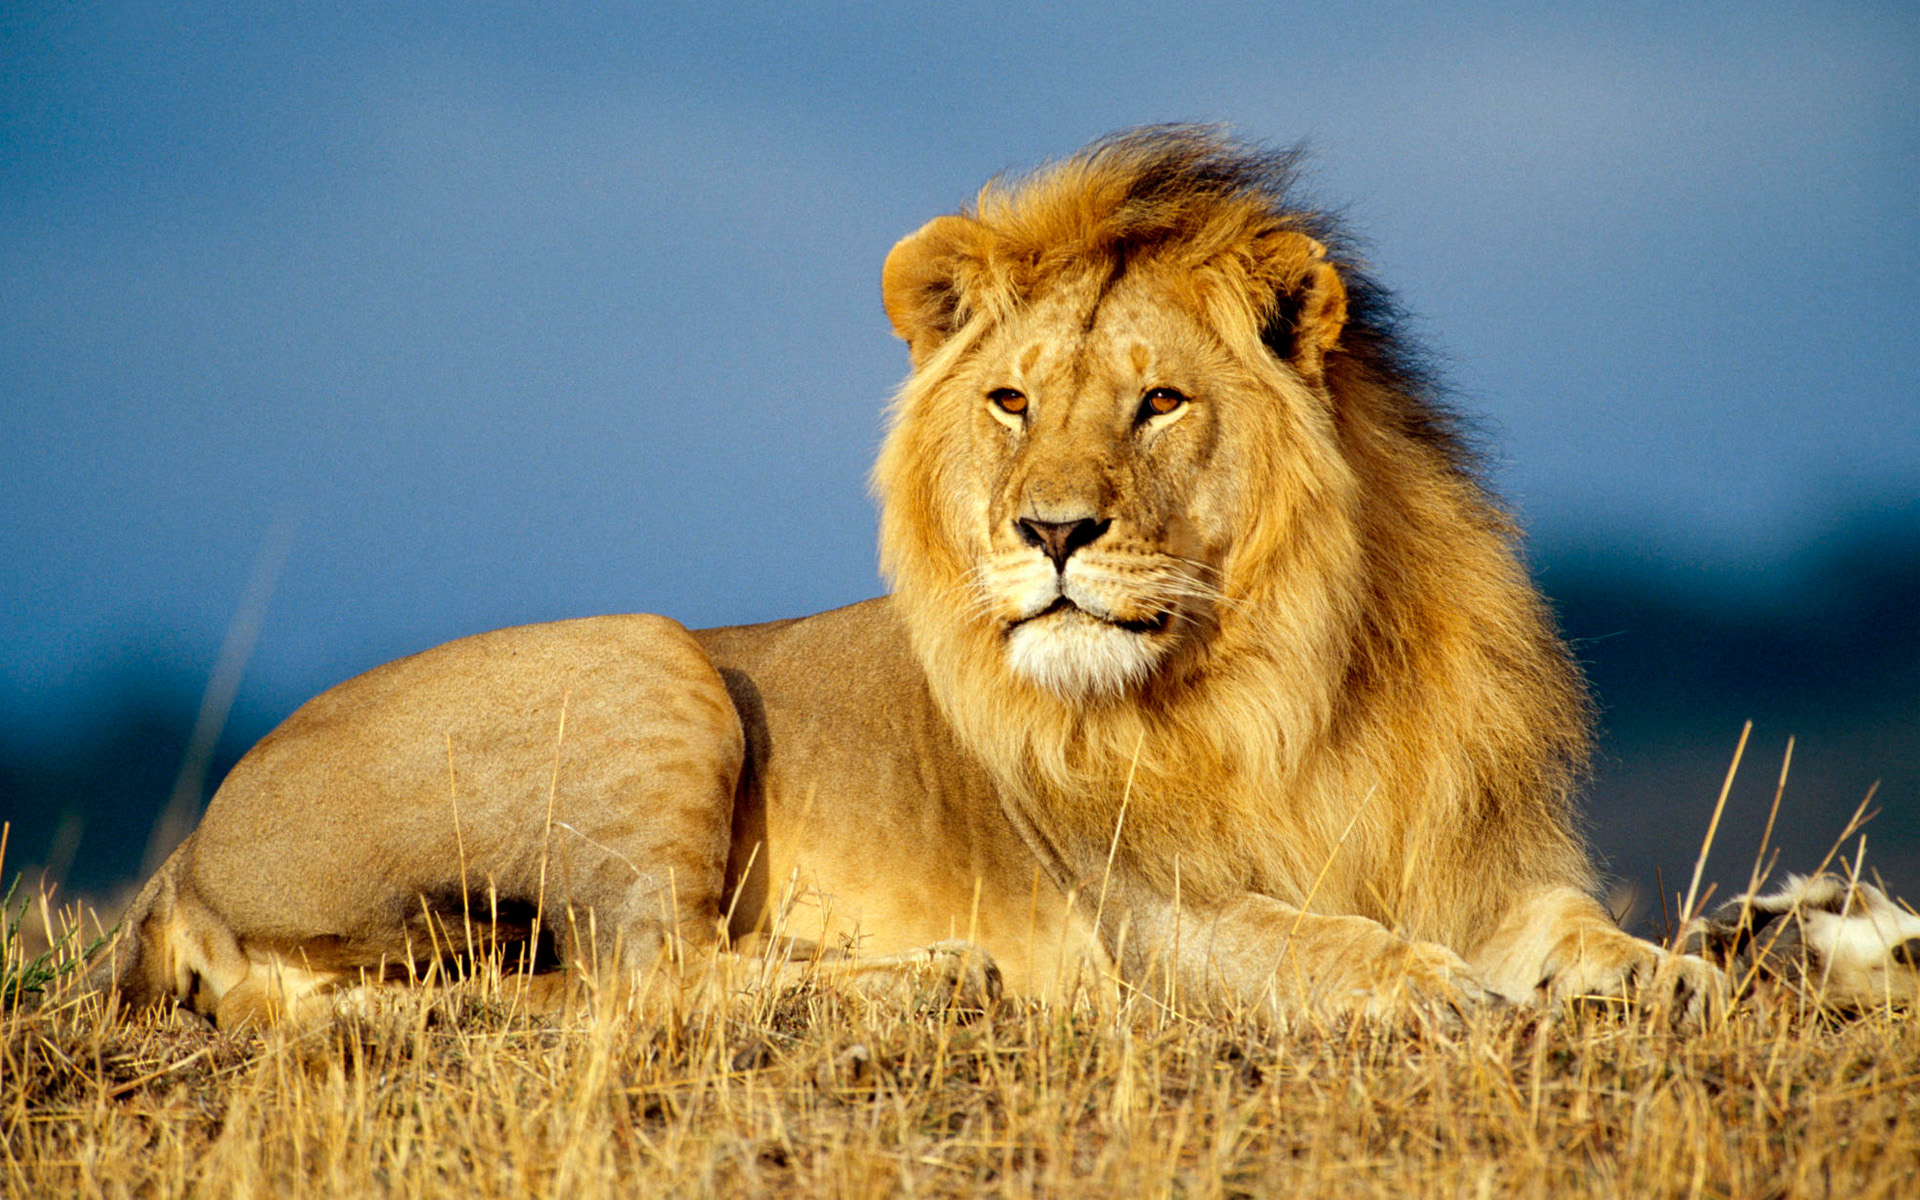 Big Lion Lying in the Grass